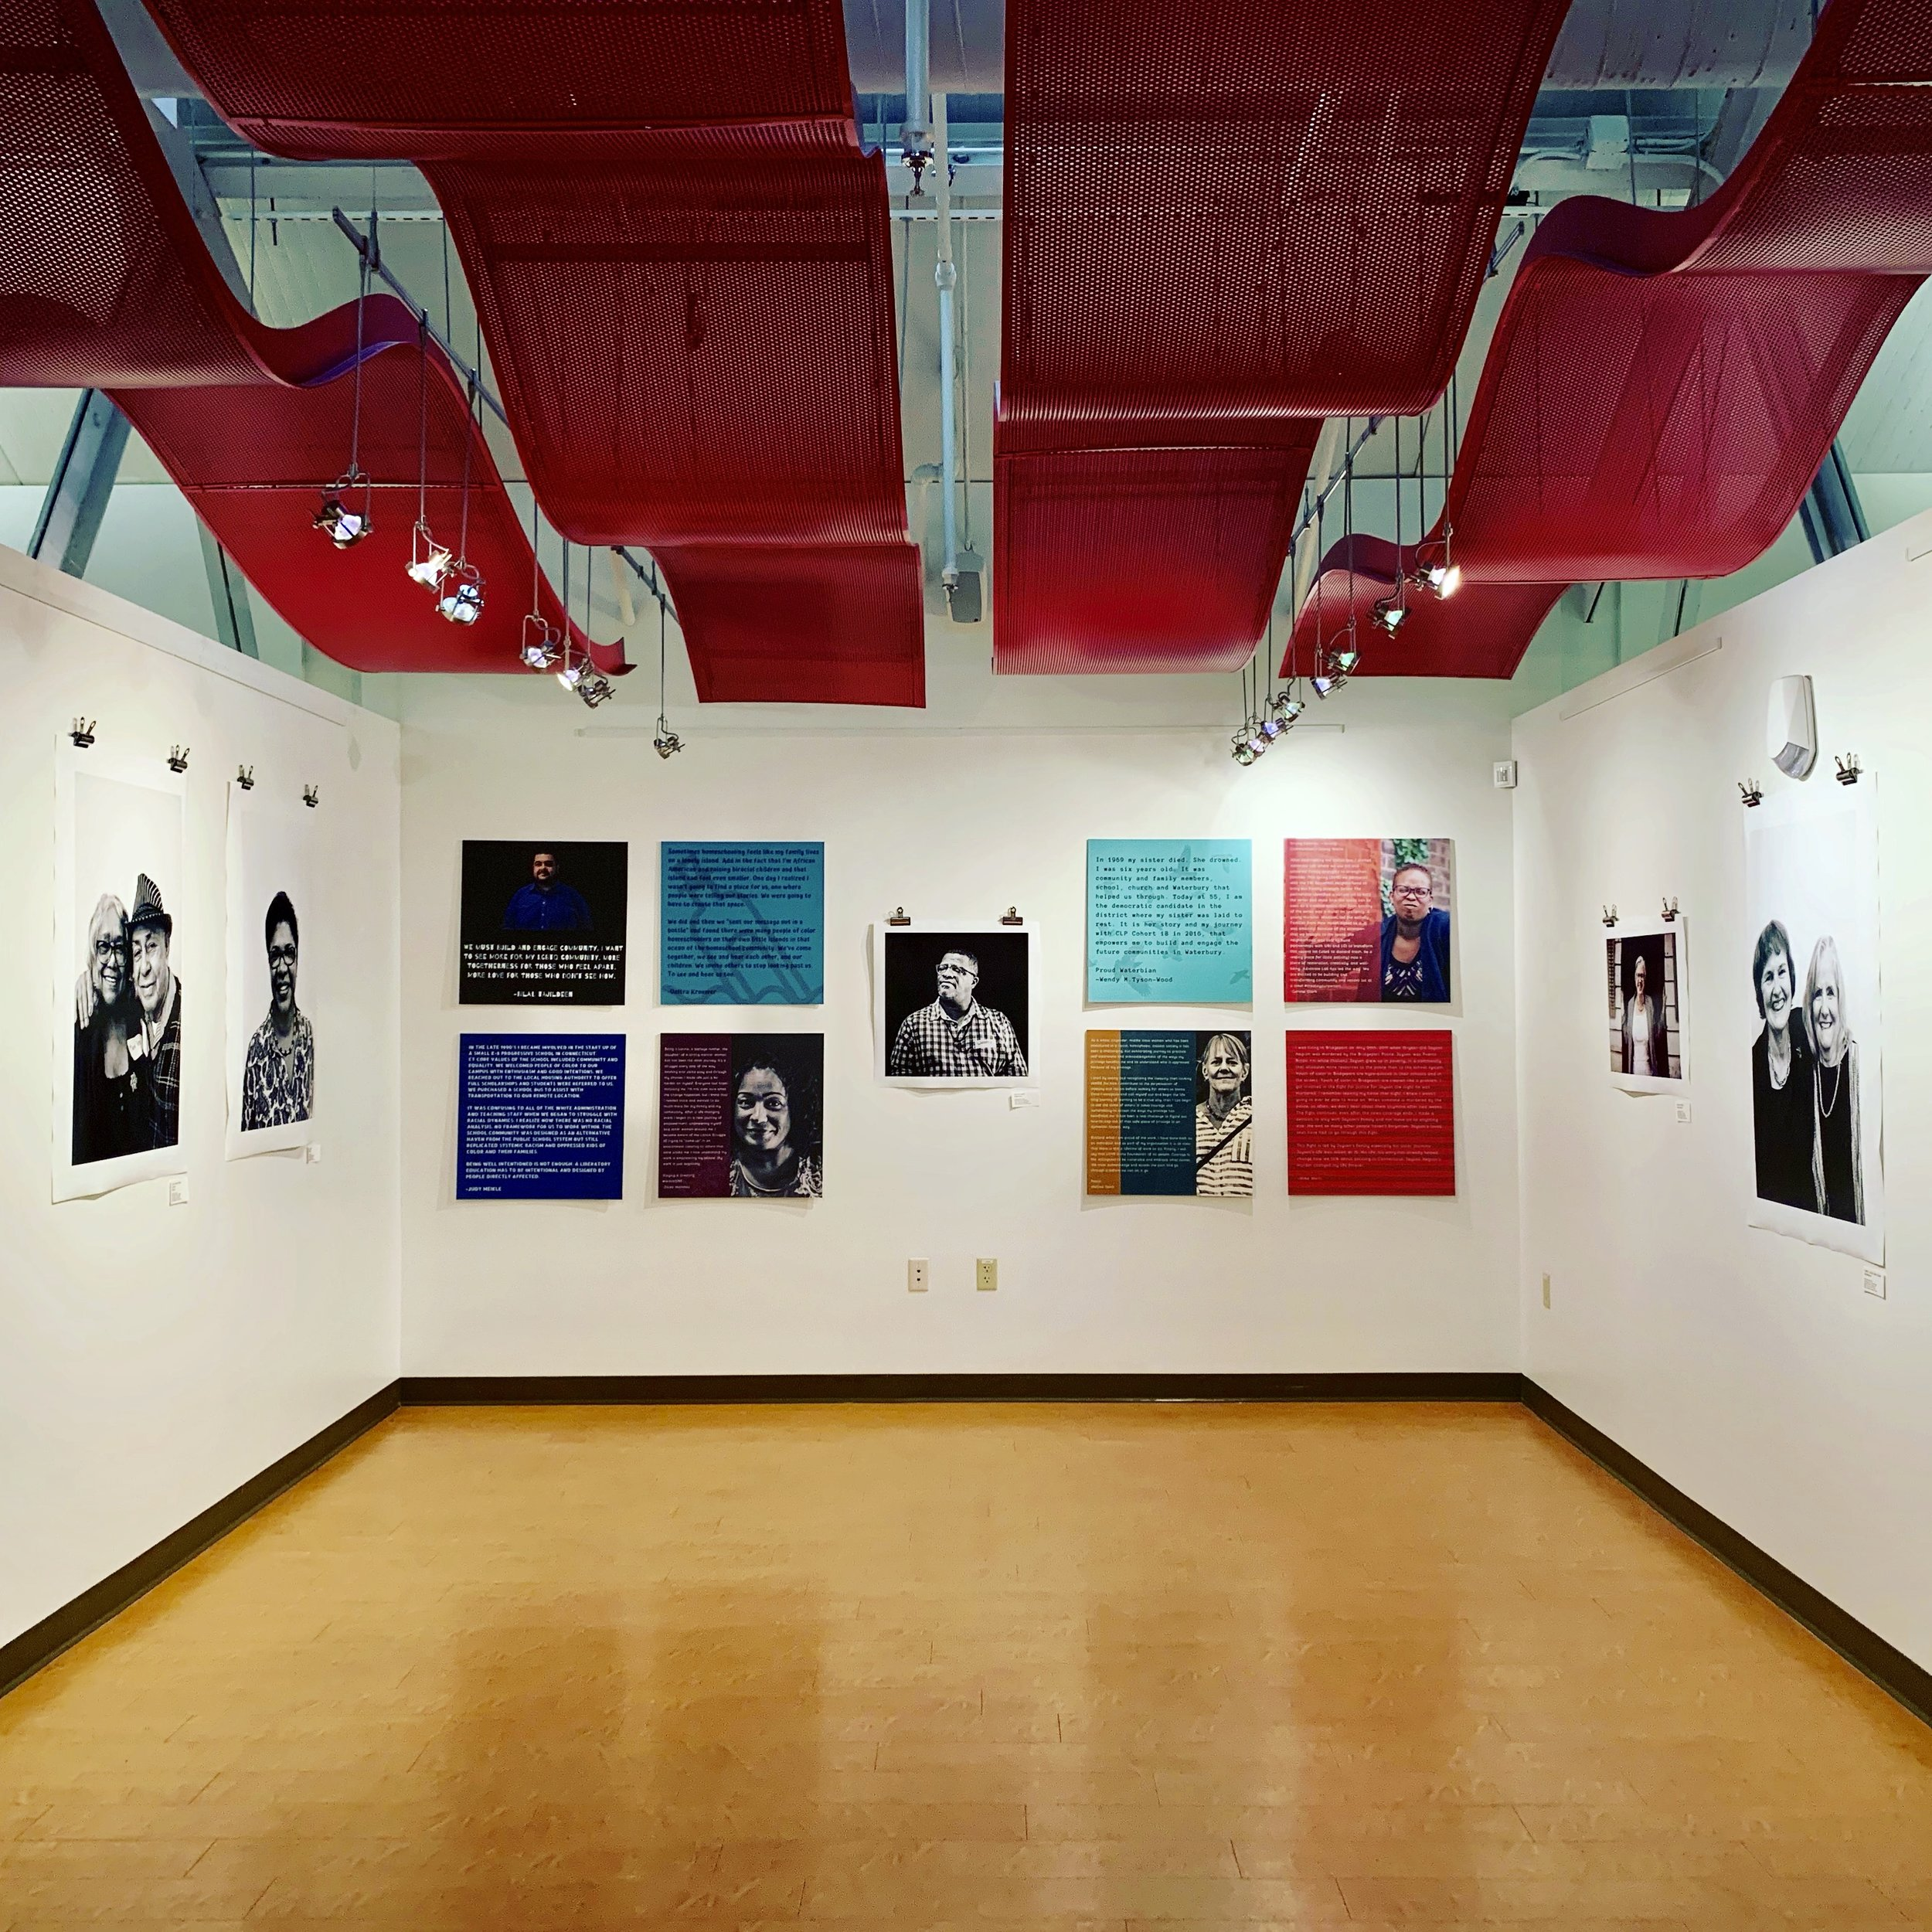 One corner of the STORYSCAPE exhibit up at ConnCAT in New Haven, CT Dec 13, 2018 - Jan 25, 2019. Commissioned by the William Caspar Graustein Memorial Fund, STORYSCAPE is a multi-media show exploring stories of education, race, justice and community from across Connecticut.